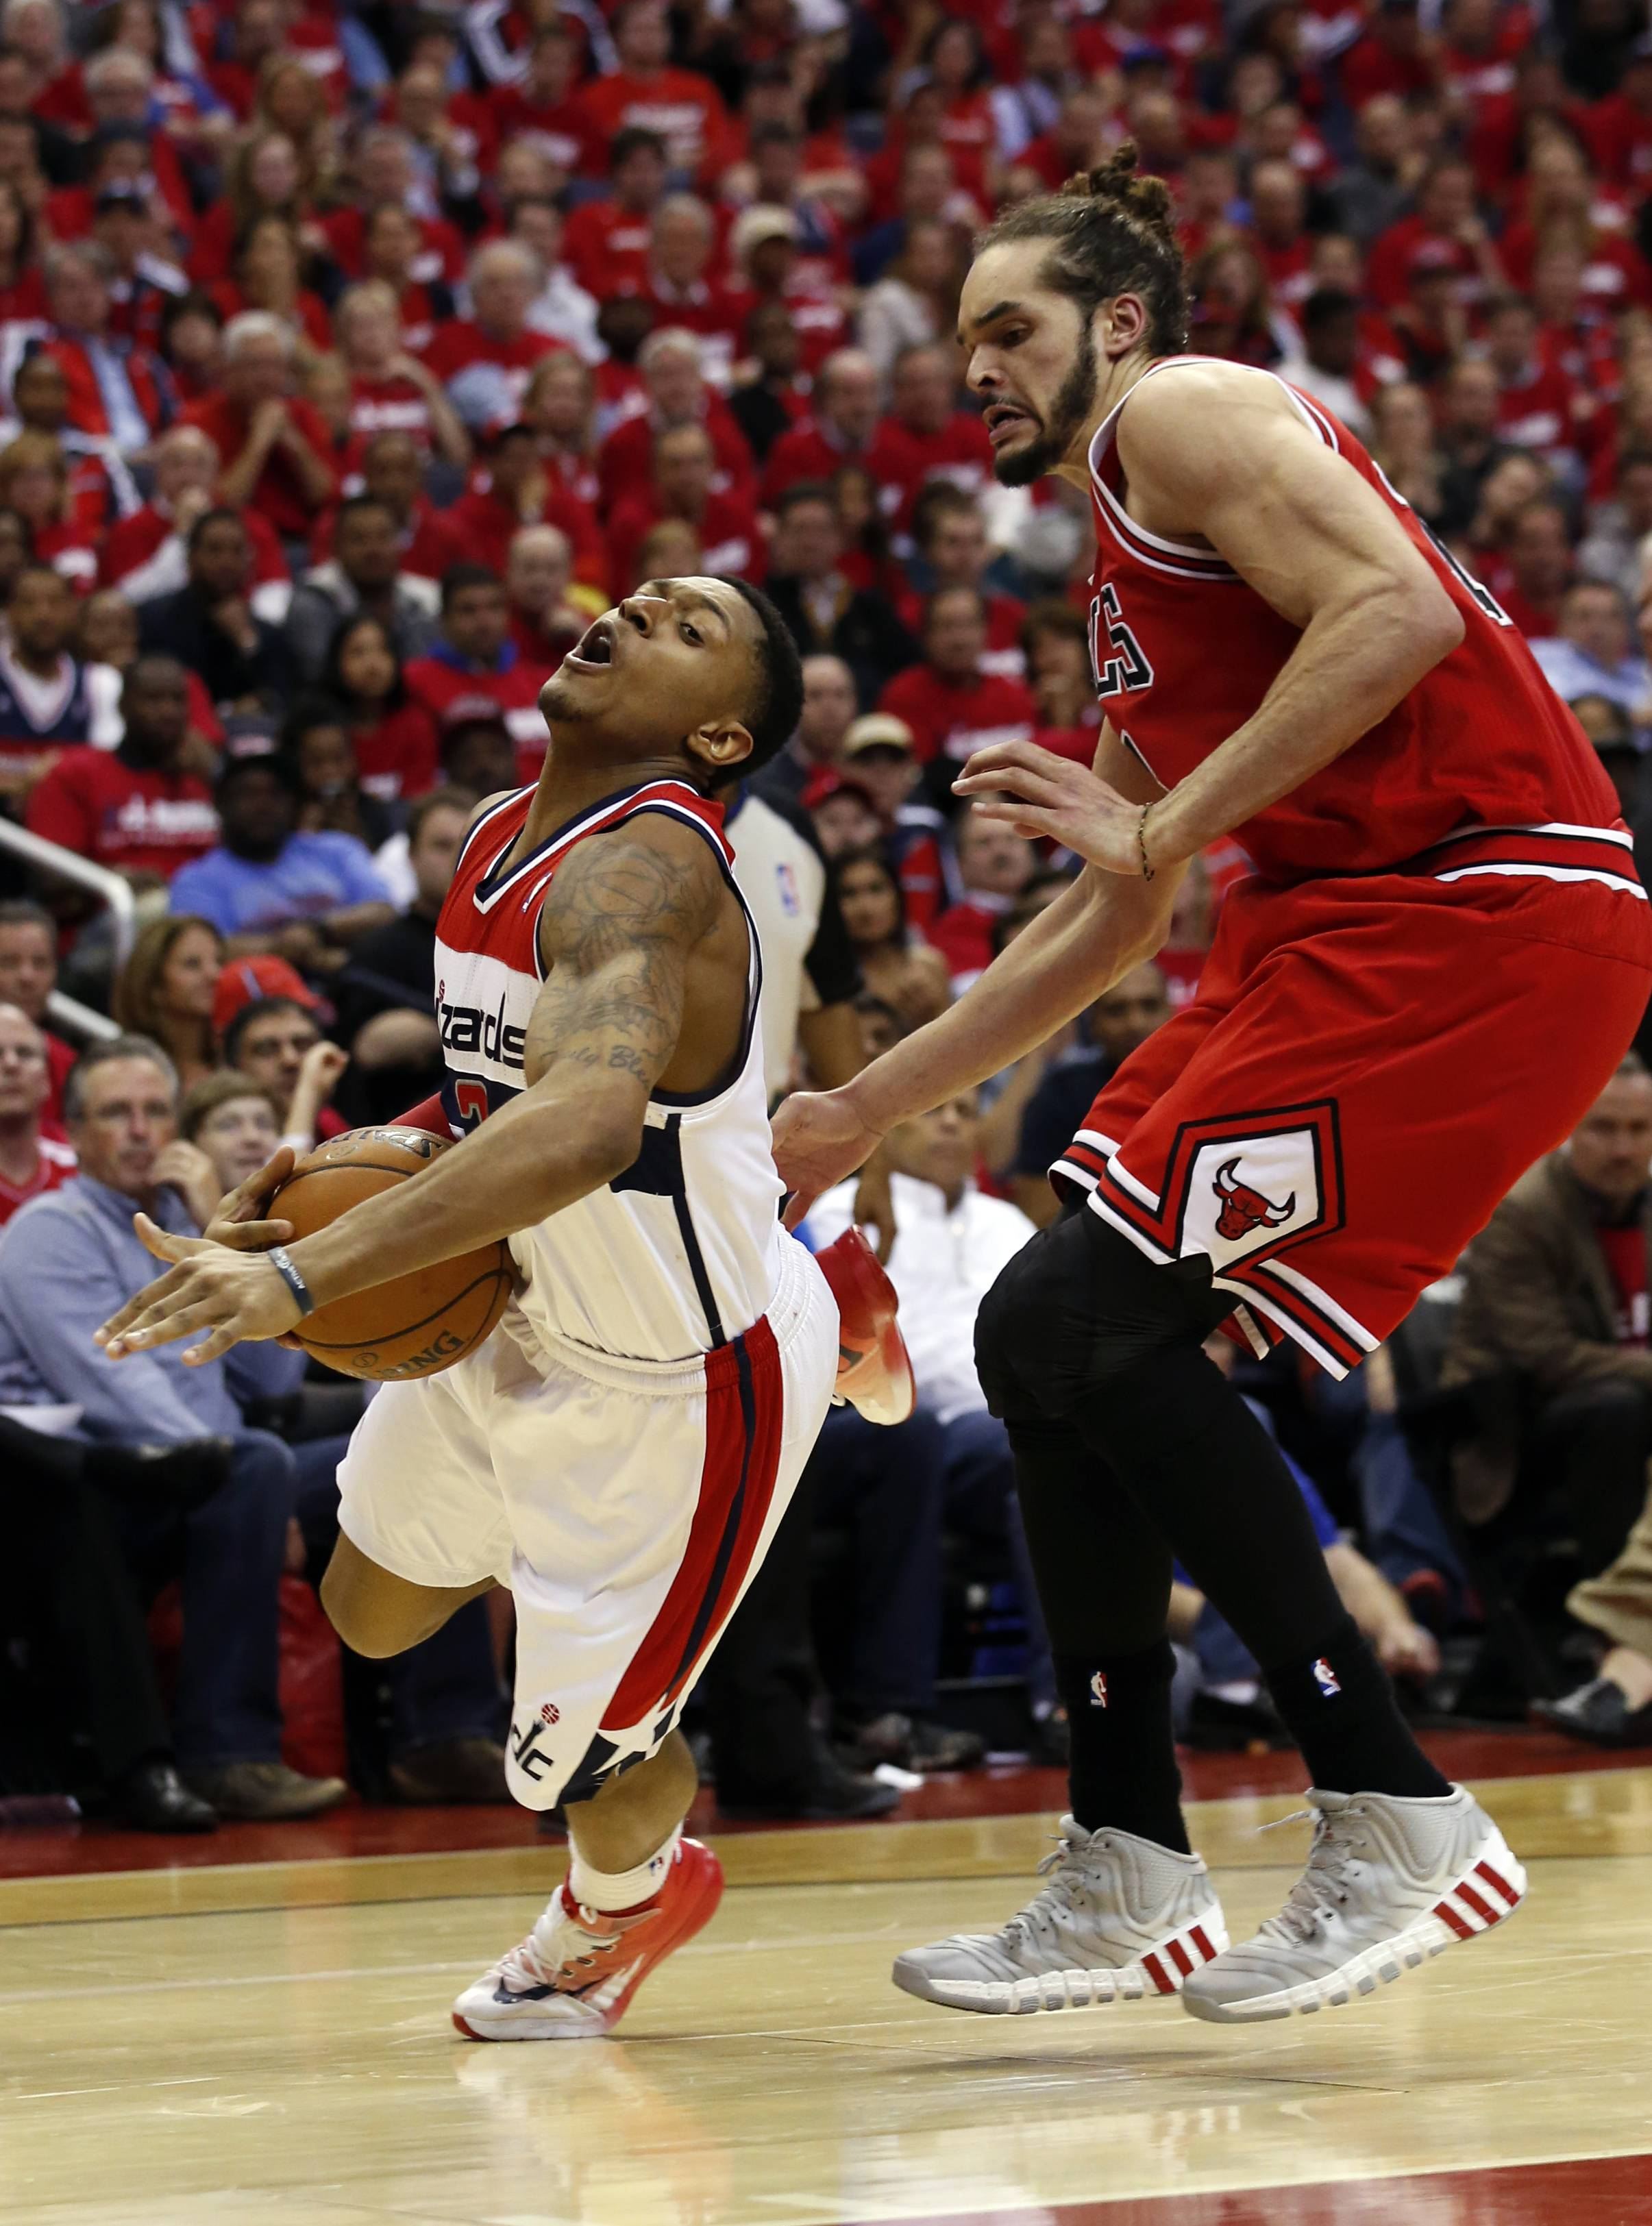 Washington Wizards guard John Wall (2) falls with Chicago Bulls center Joakim Noah (13) defending in the second half of Game 3 of an opening-round NBA basketball playoff series on Friday, April 25, 2014, in Washington. The Bulls won 100-97.